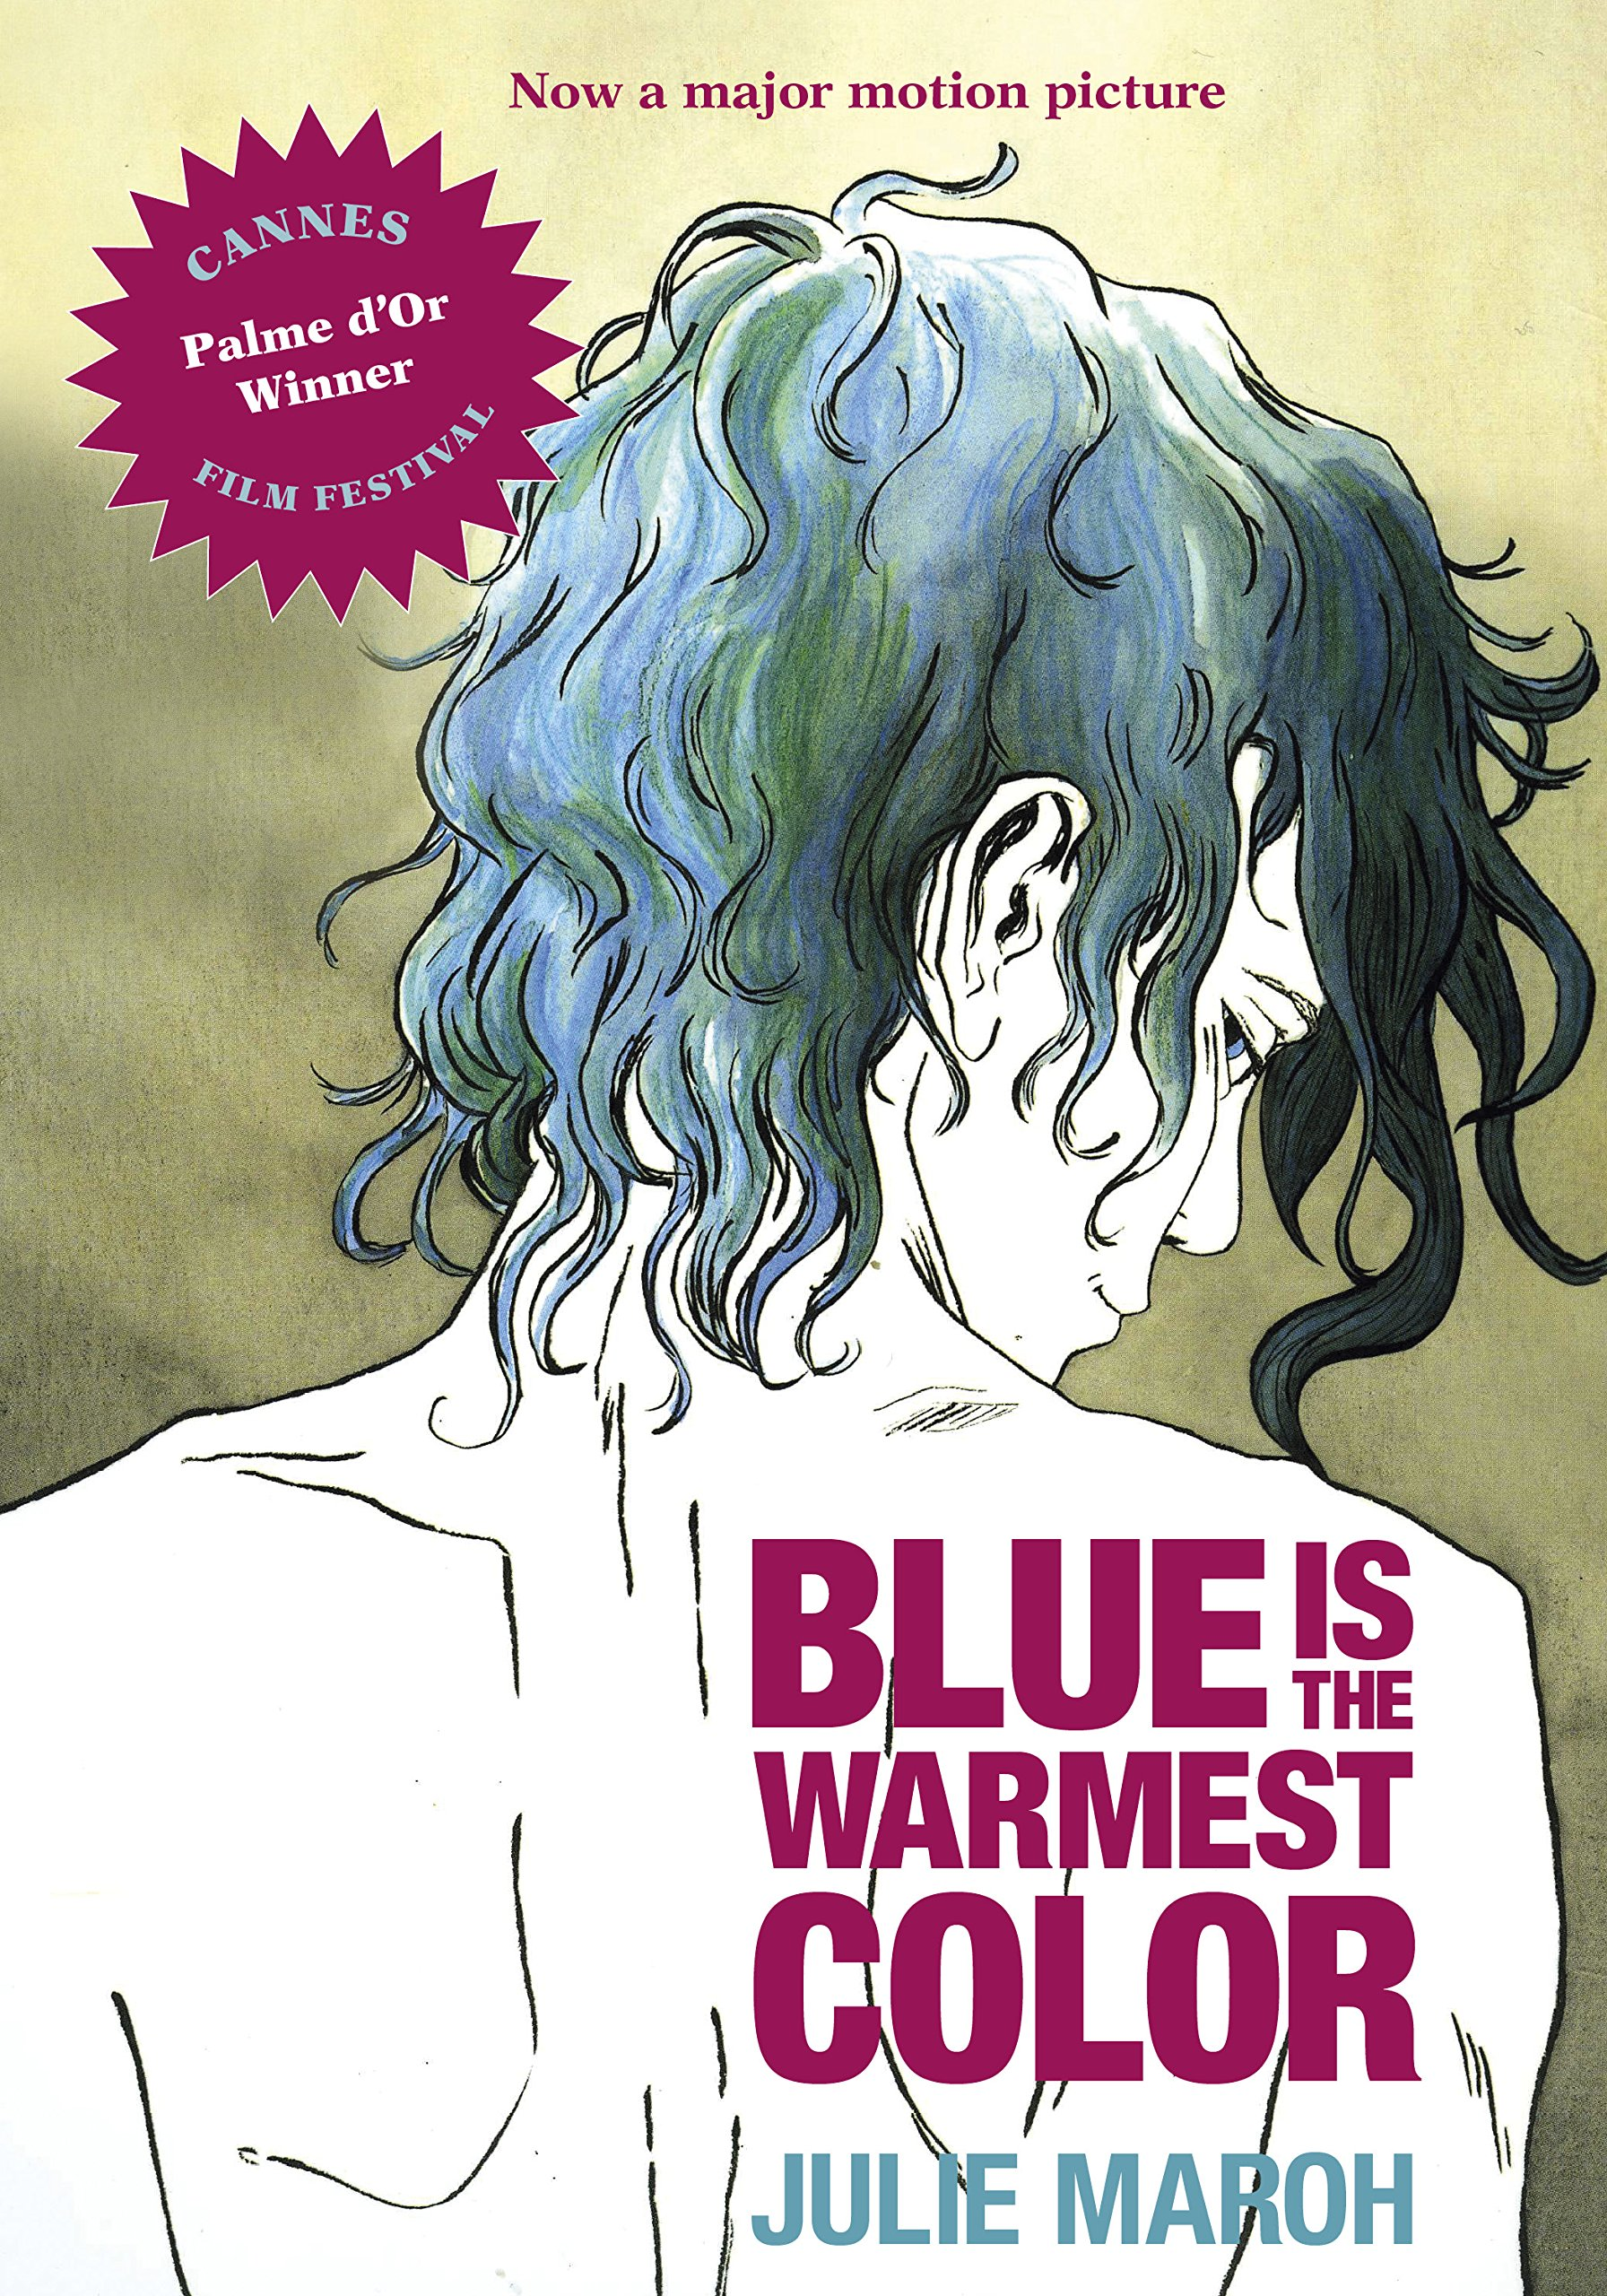 Amazon.com: Blue Is the Warmest Color (8601404270413): Julie Maroh ...